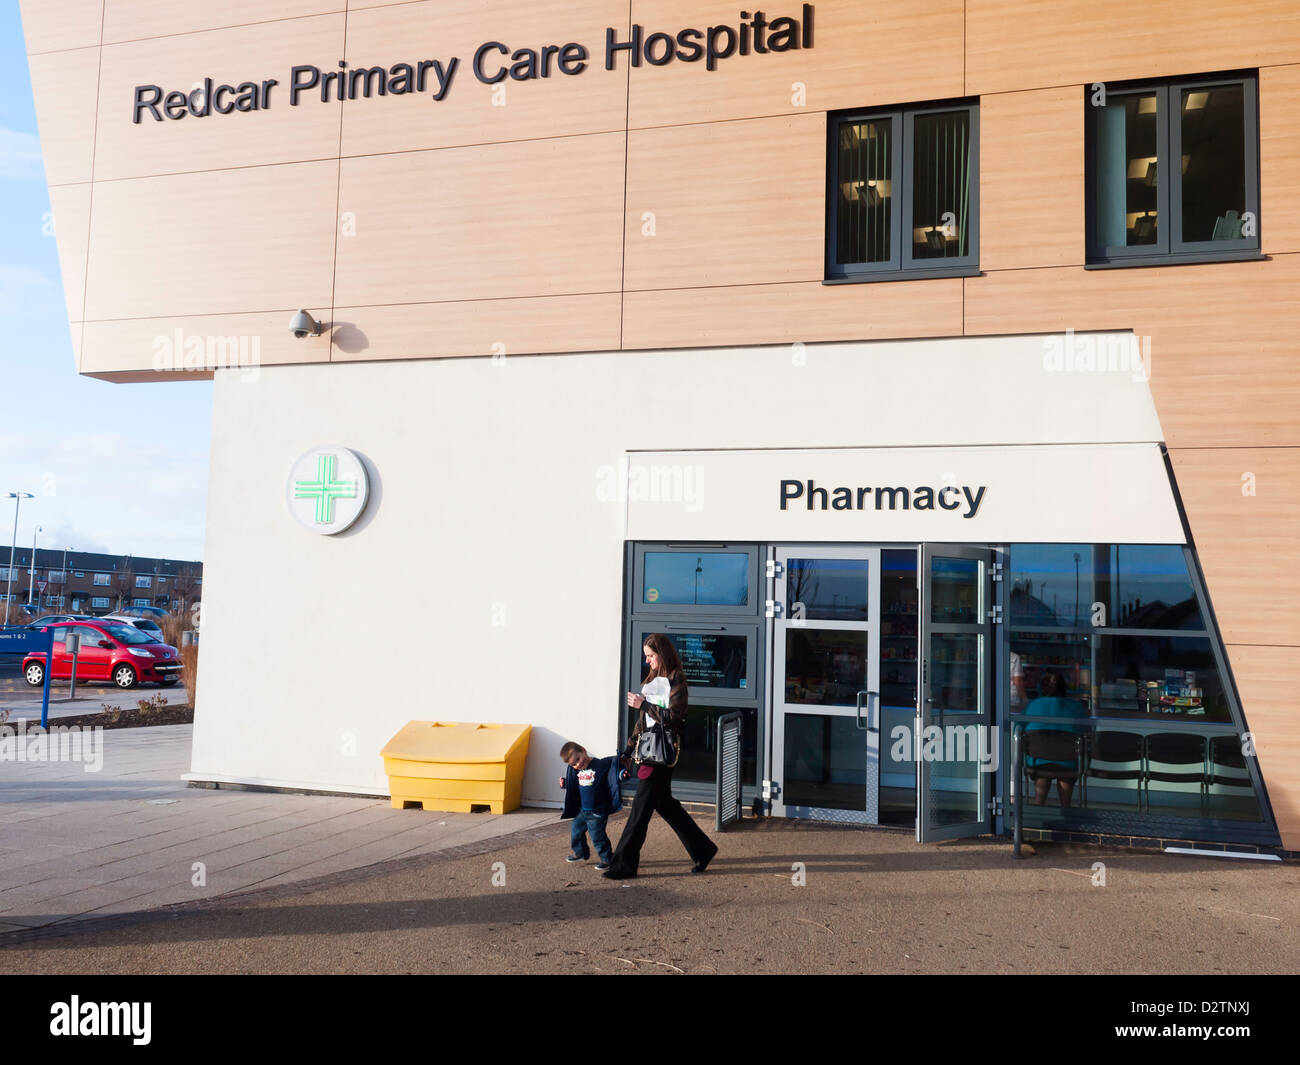 Redcar Primary Care Hospital entrance and Pharmacy mother  and child passing - Stock Image